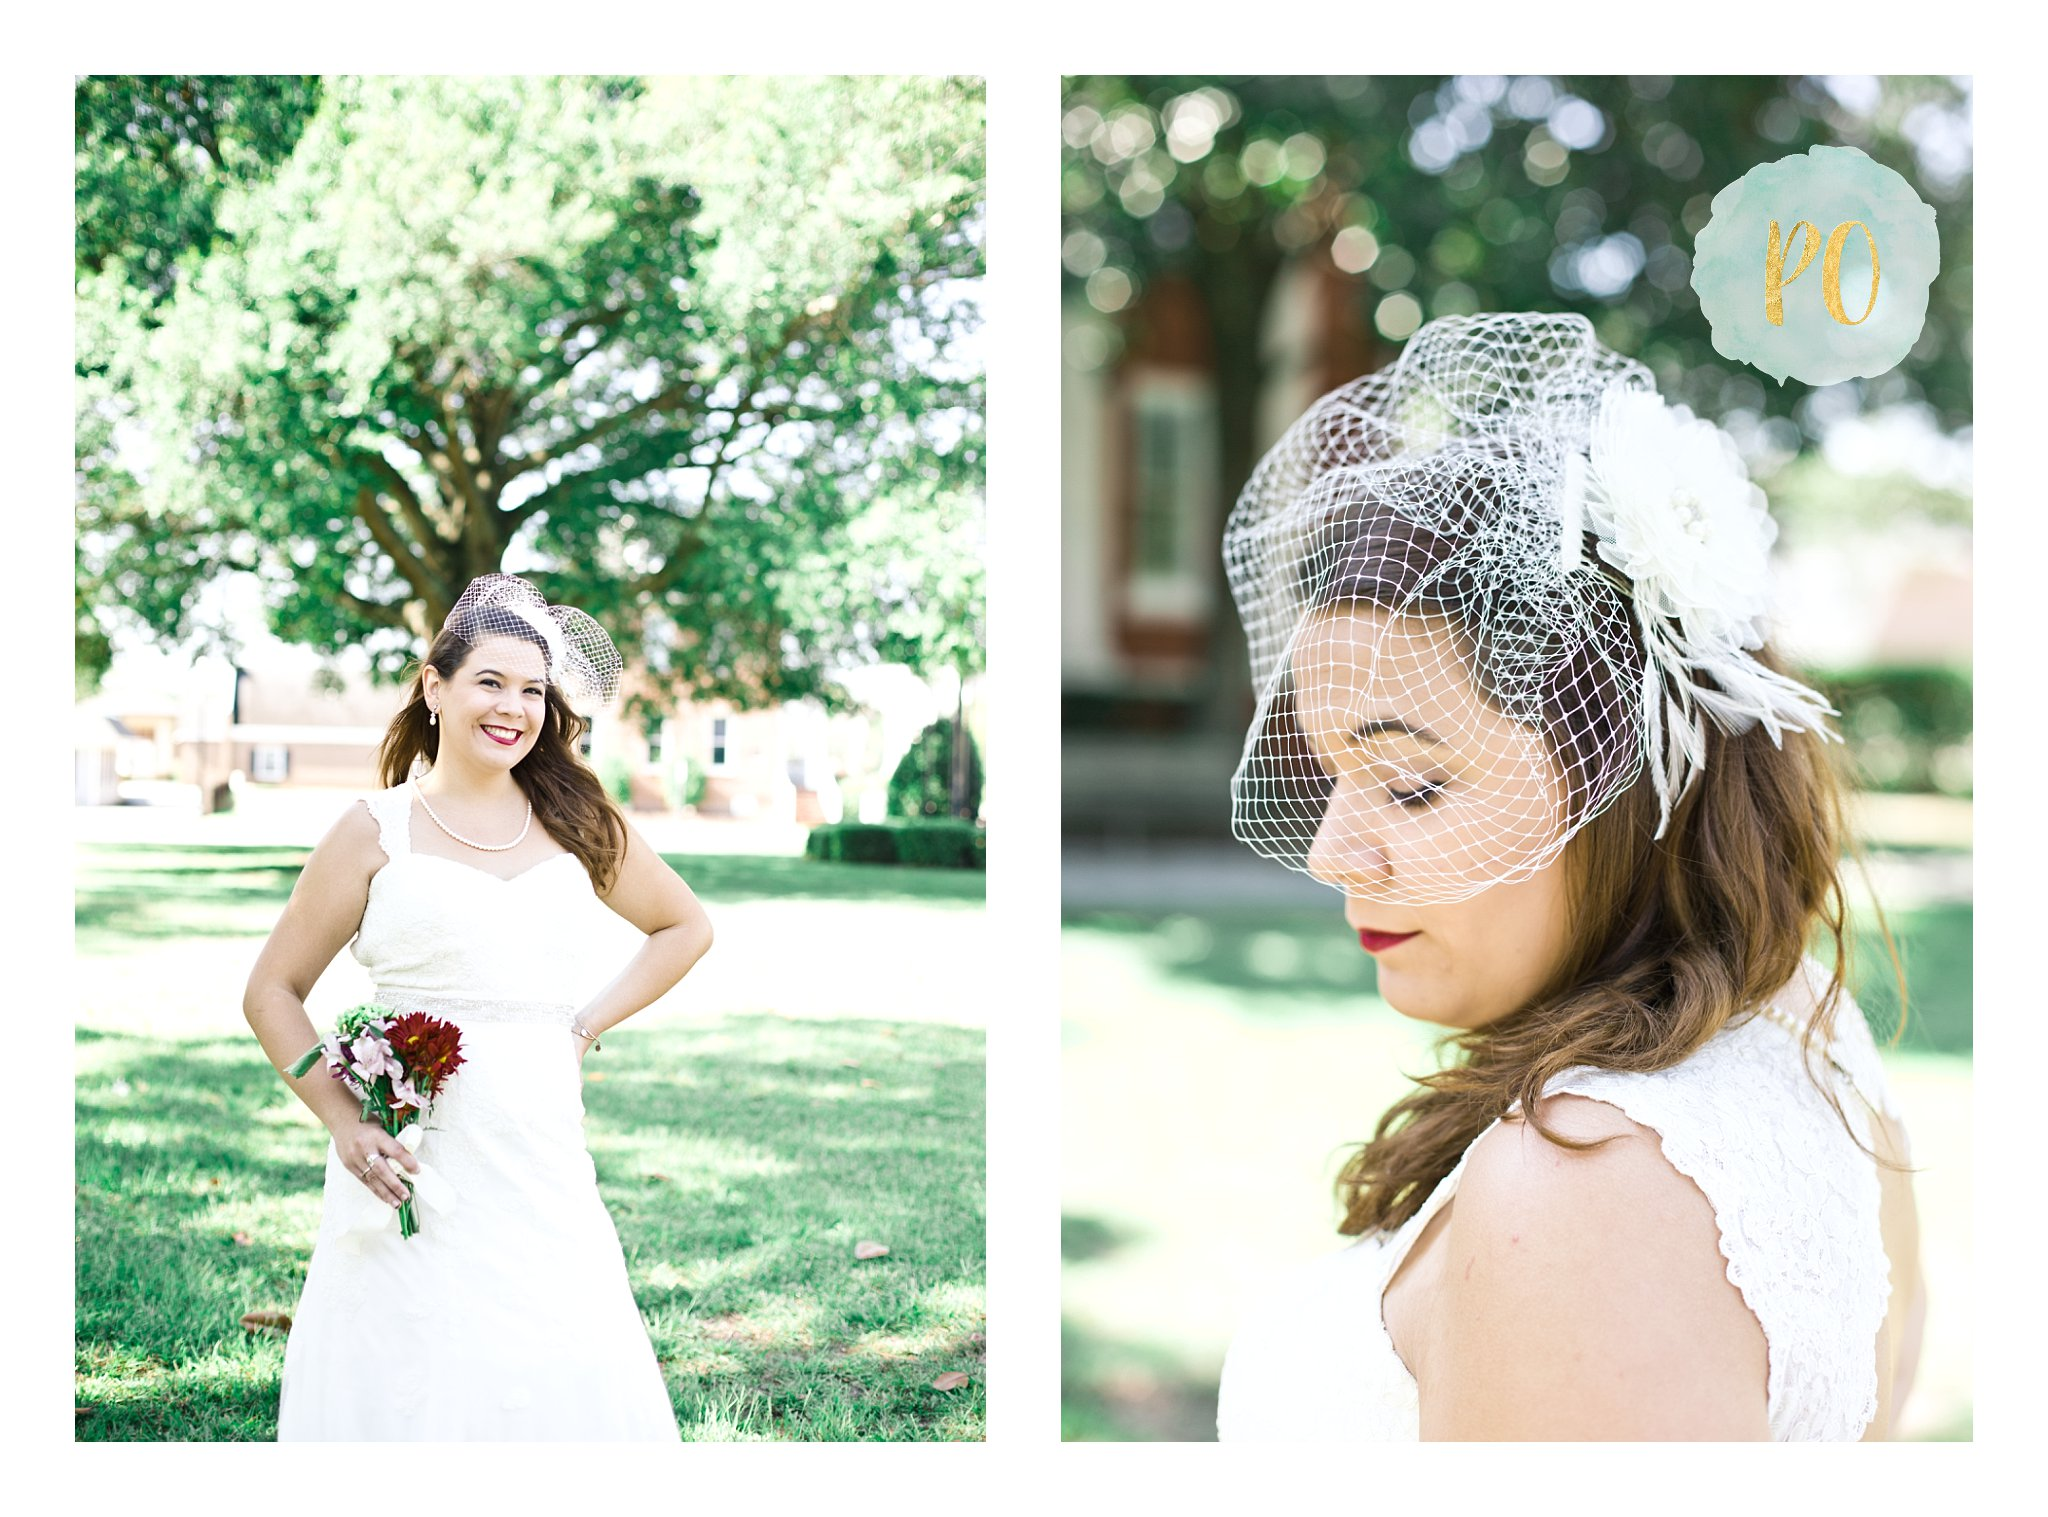 cypress-inn-lowcountry-bridal-session-conway-sc-photos_0145.jpg